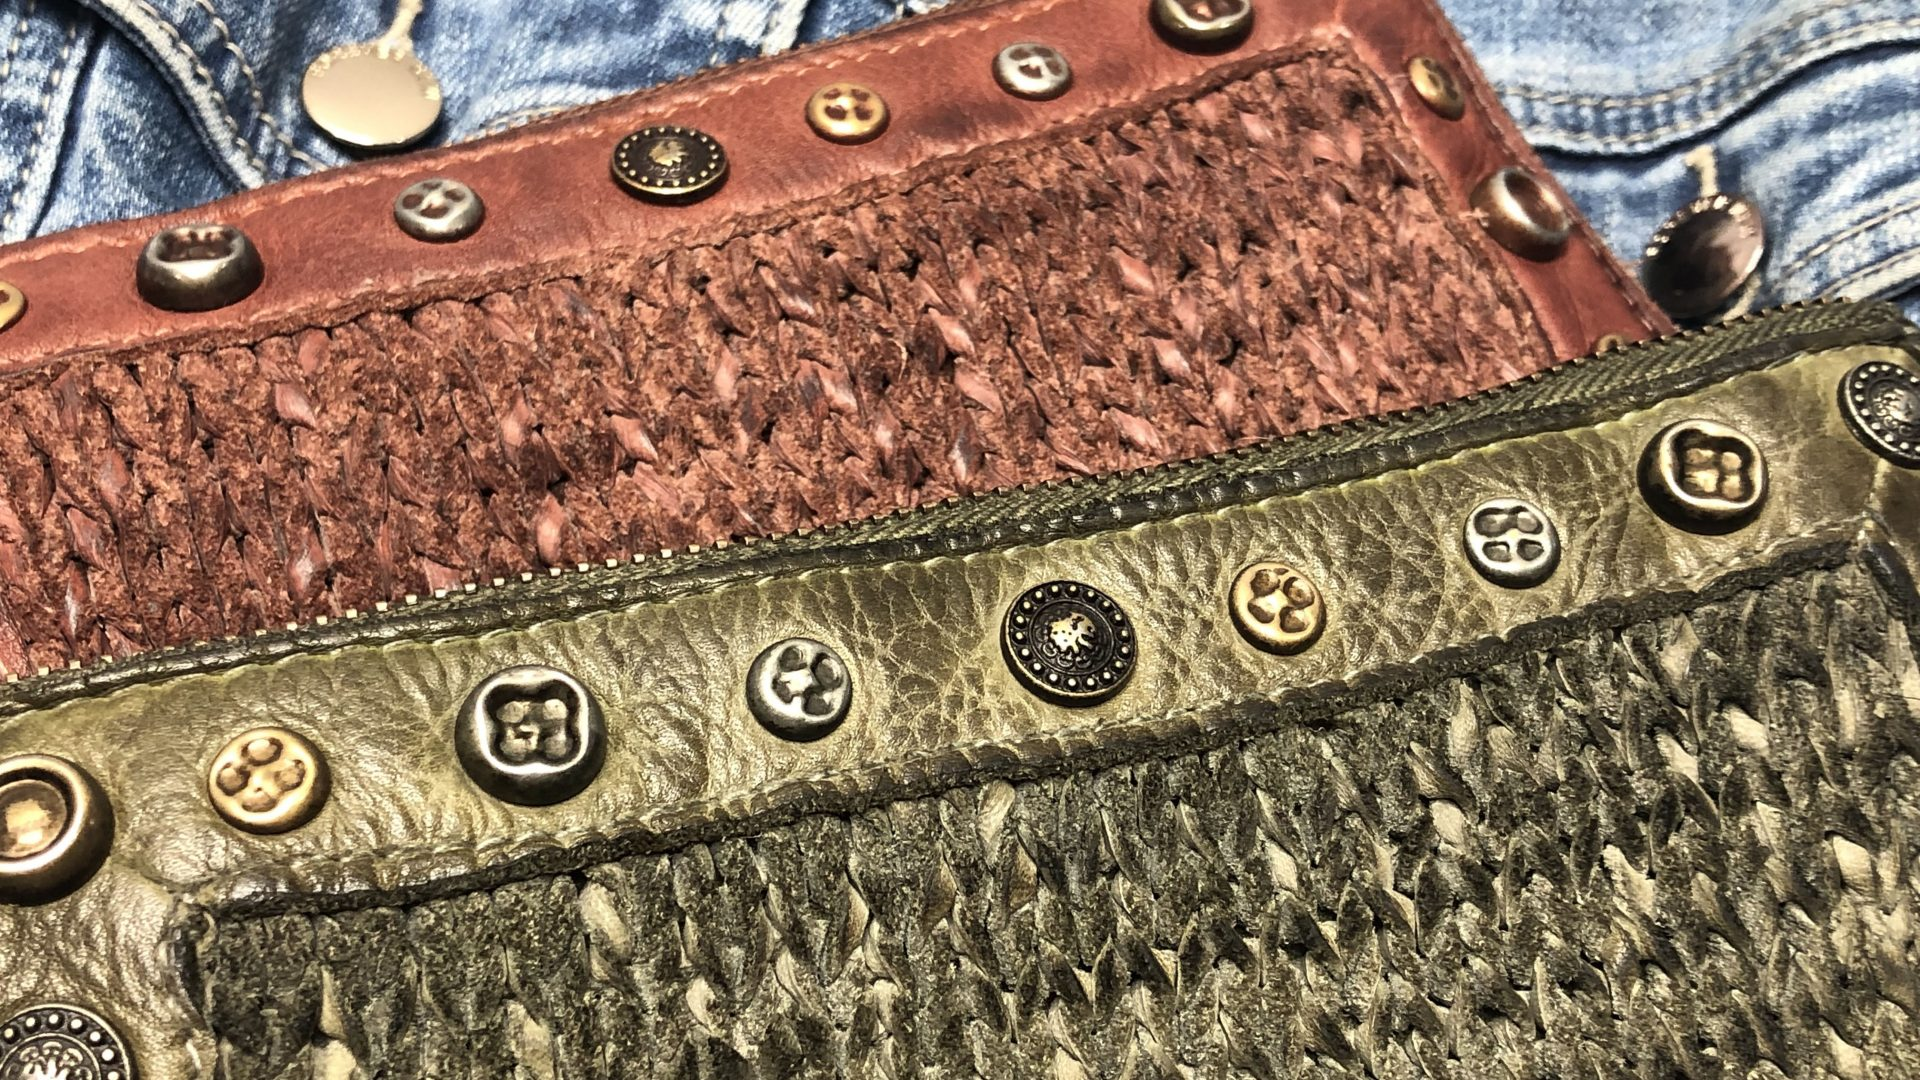 knitted leather!